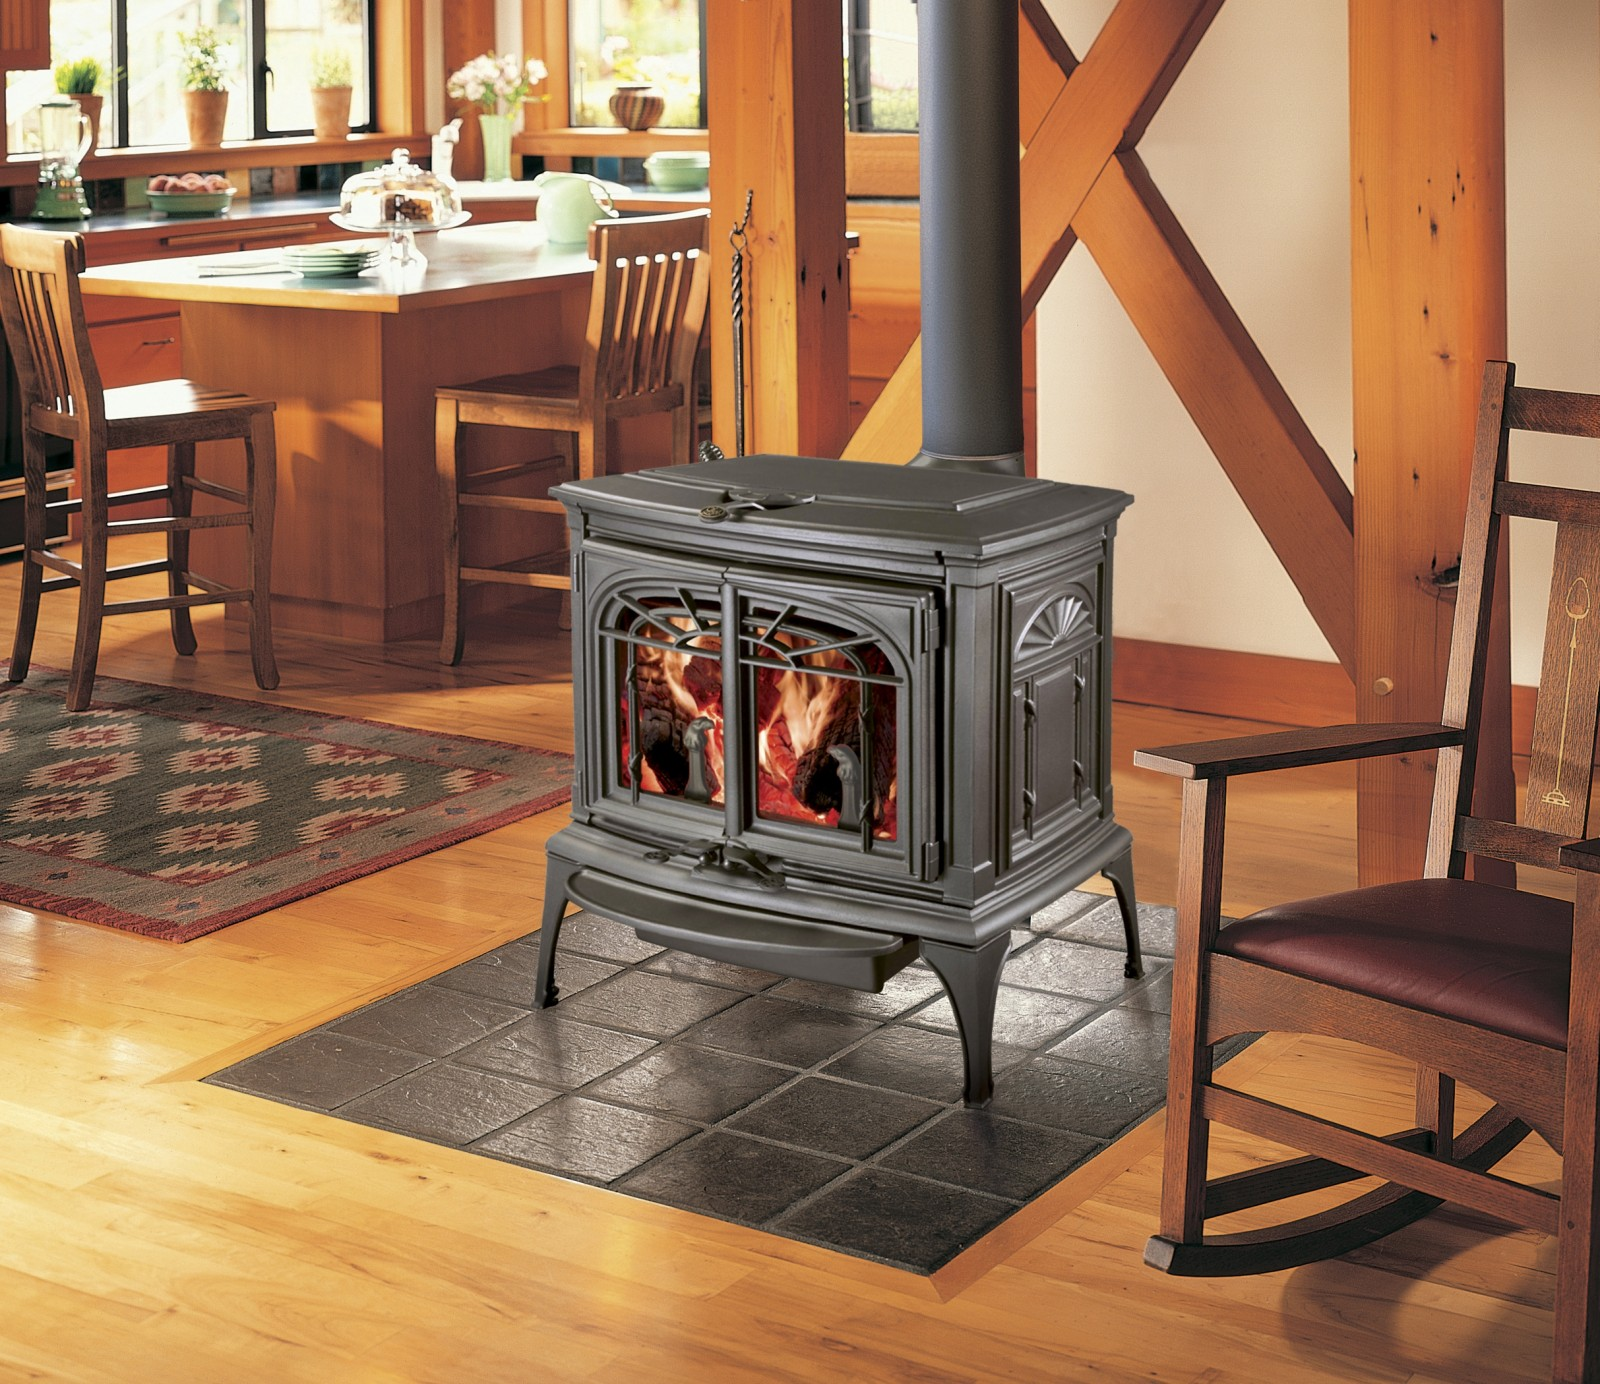 Gaskaminofen Erdgas Fireplaces And Hearths For Sale In Okemos Mi Heat 39n Sweep